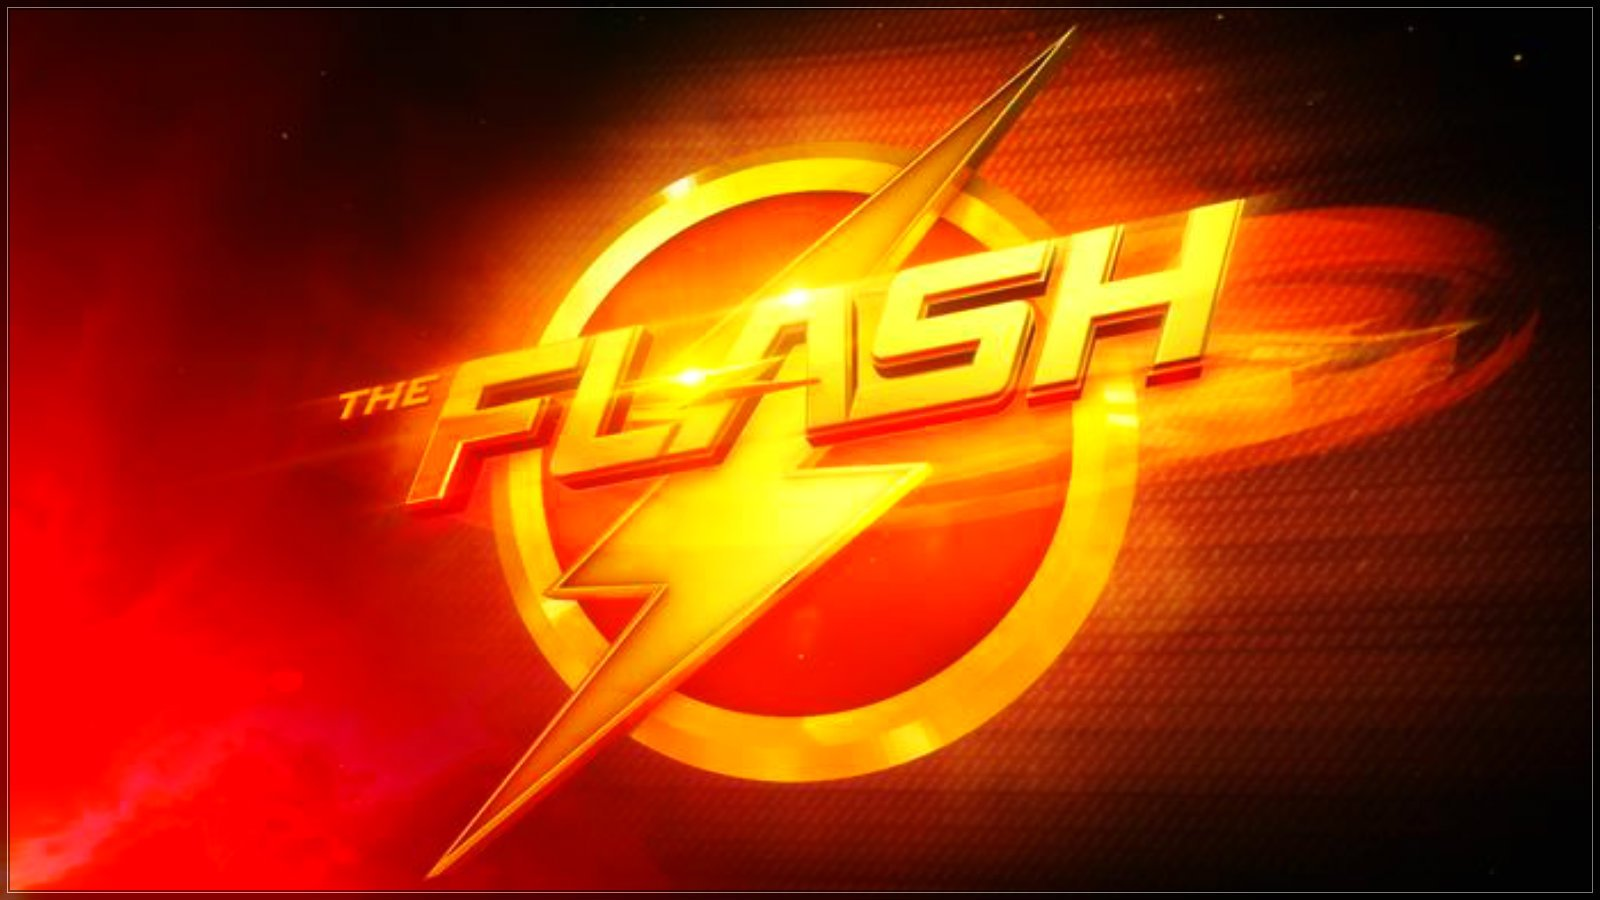 The Flash   The Flash CW Wallpaper 37656143 1600x900